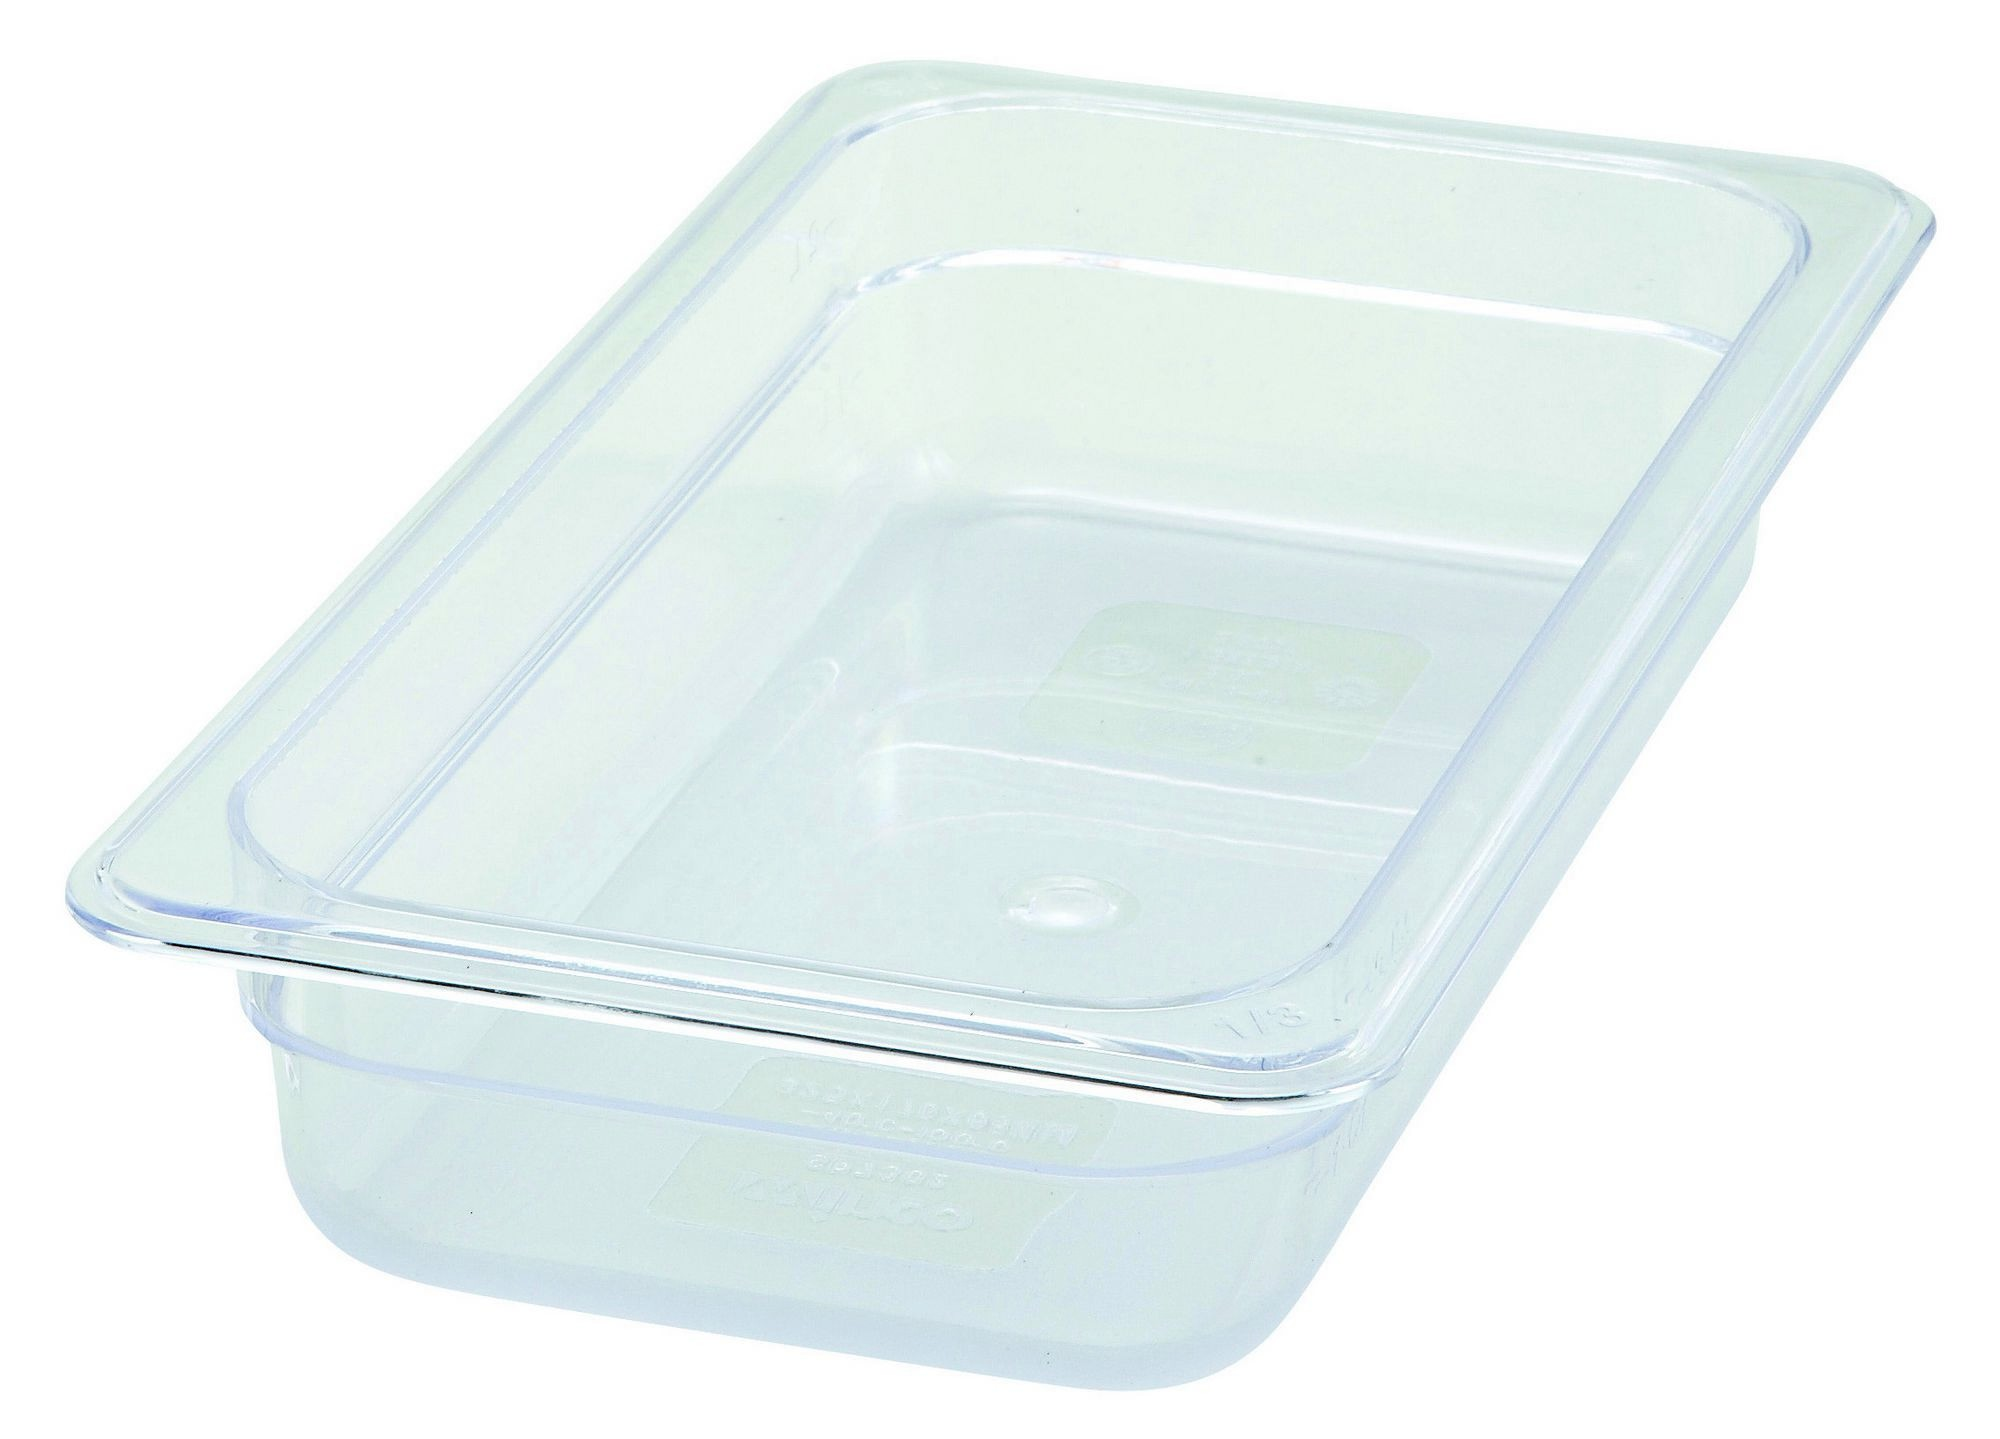 Polycarbonate NSF One-Third Size Food Pan - 2-1/2 Deep